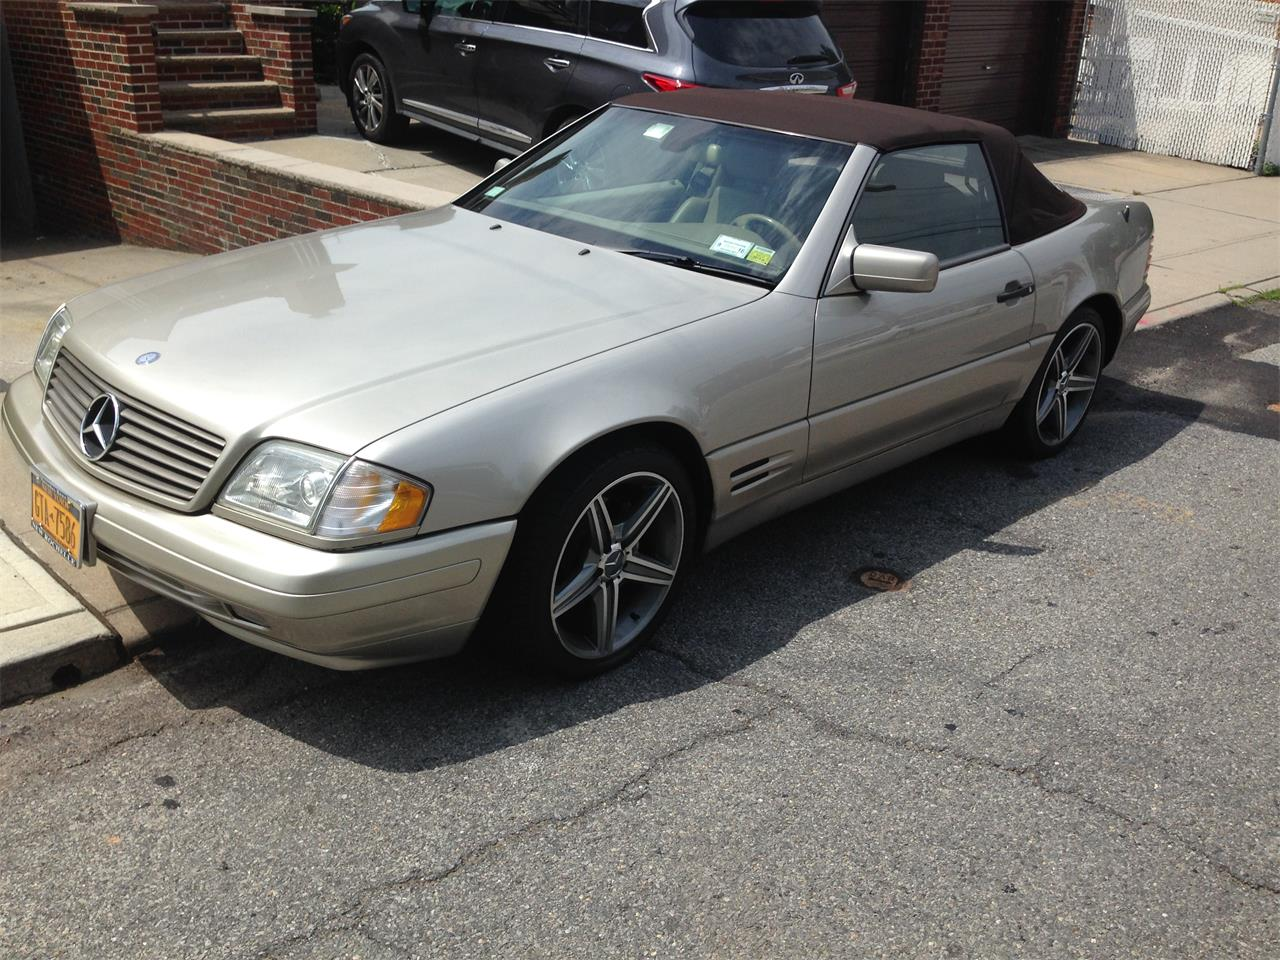 Large Picture of 1998 SL500 located in New York - $7,900.00 Offered by a Private Seller - EYIB